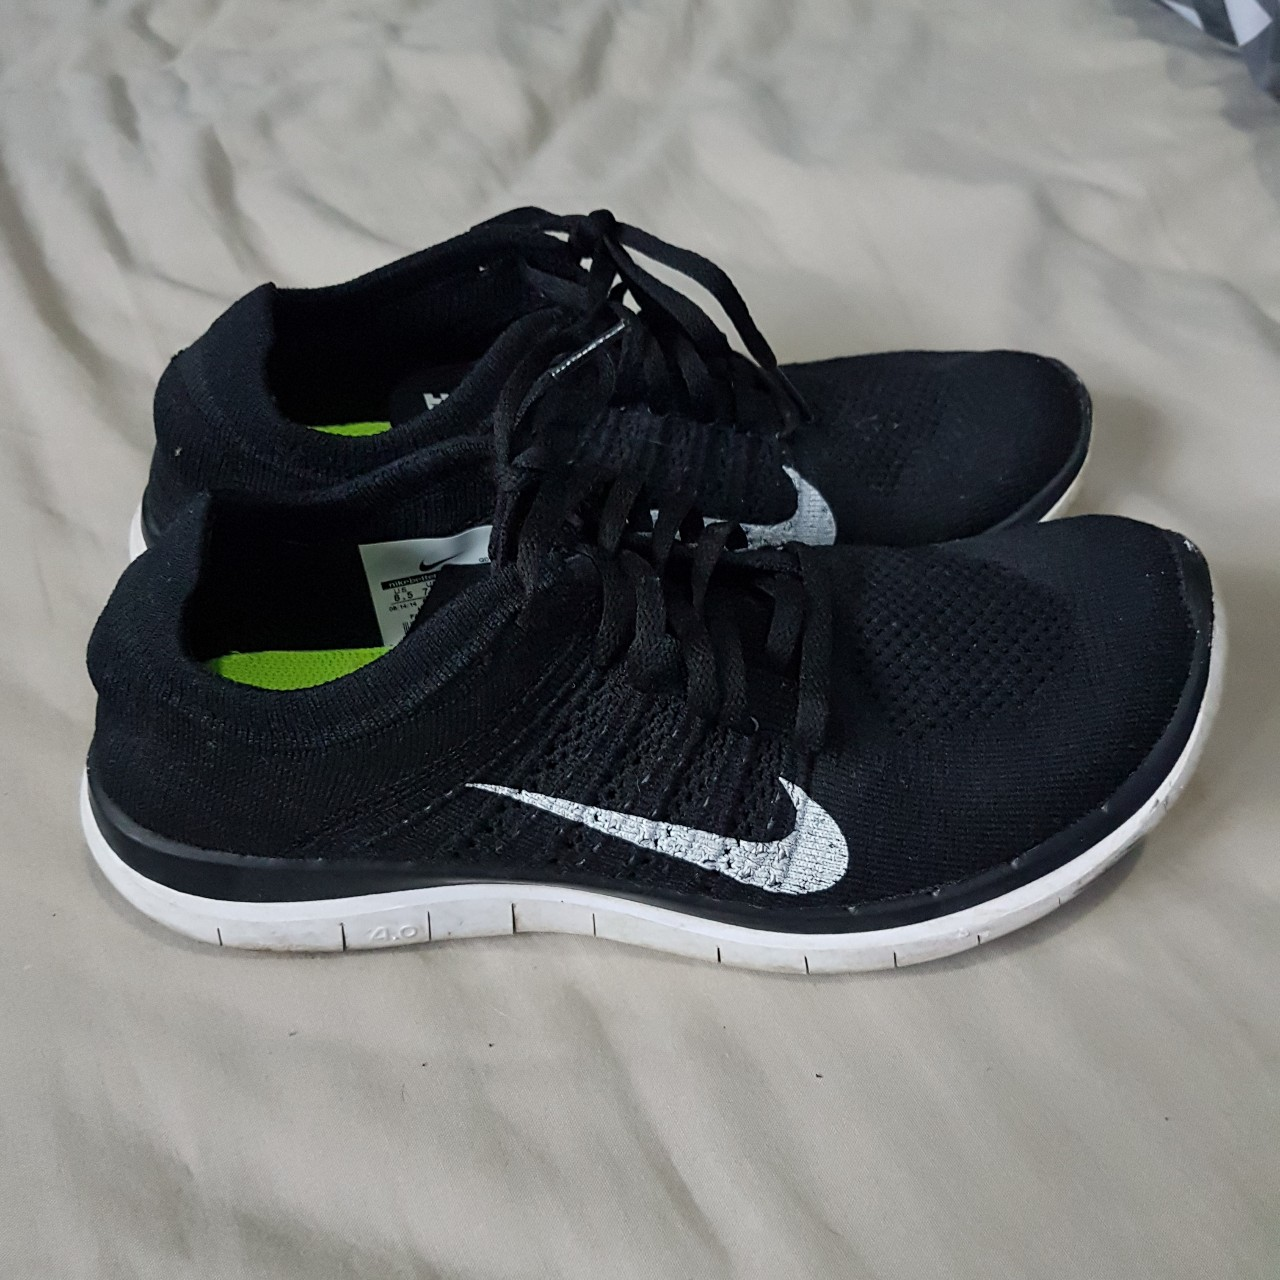 meilleur service 61b11 5145c Nike free run 4.0 flyknit black Light weight... - Depop